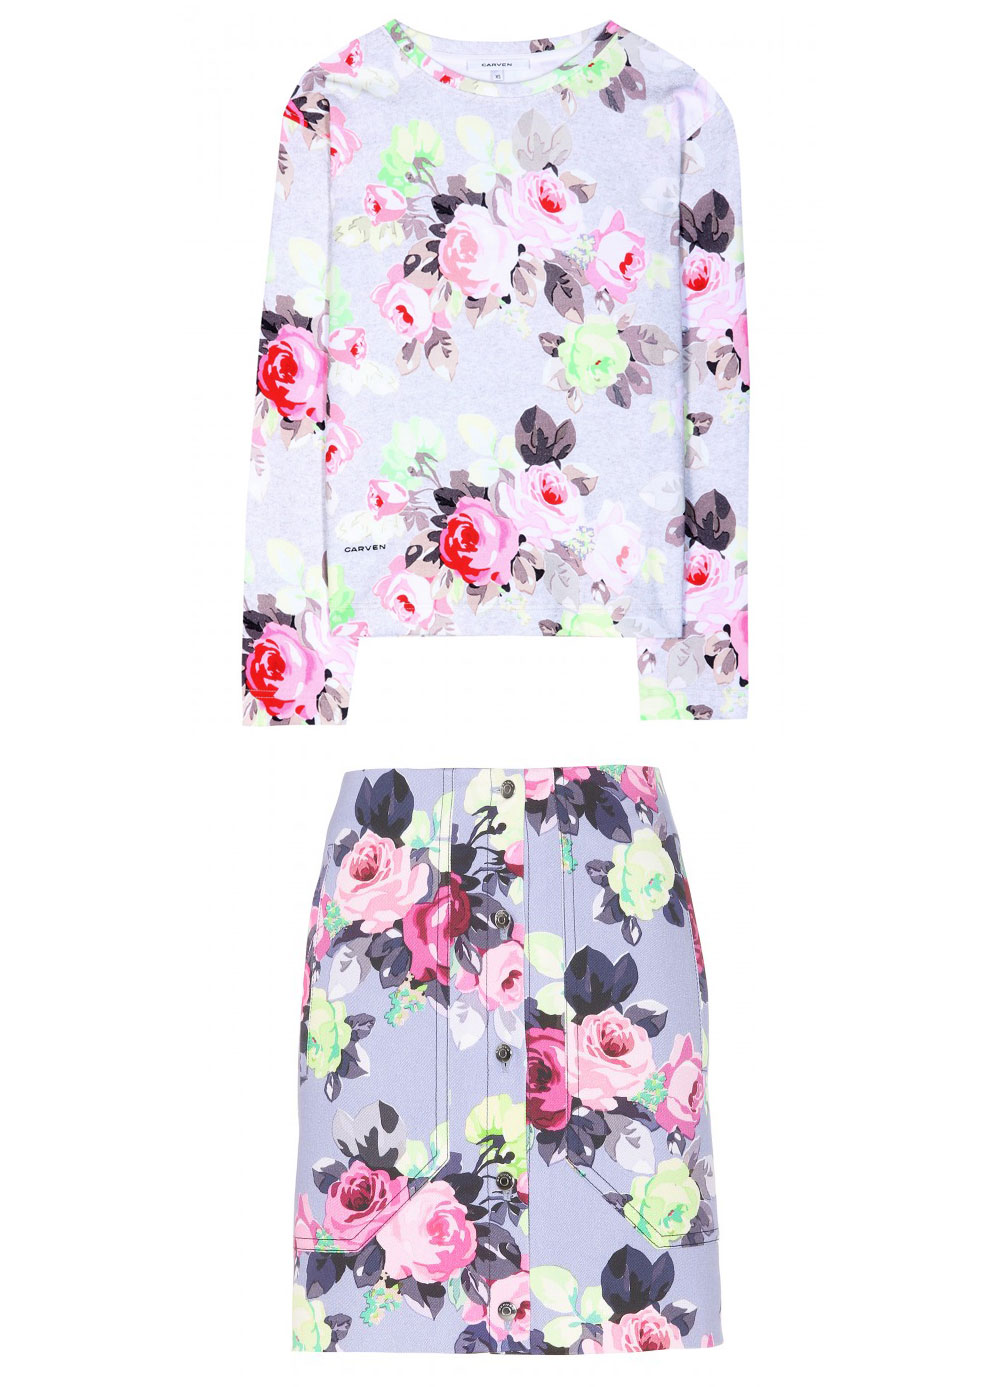 carven-flowers